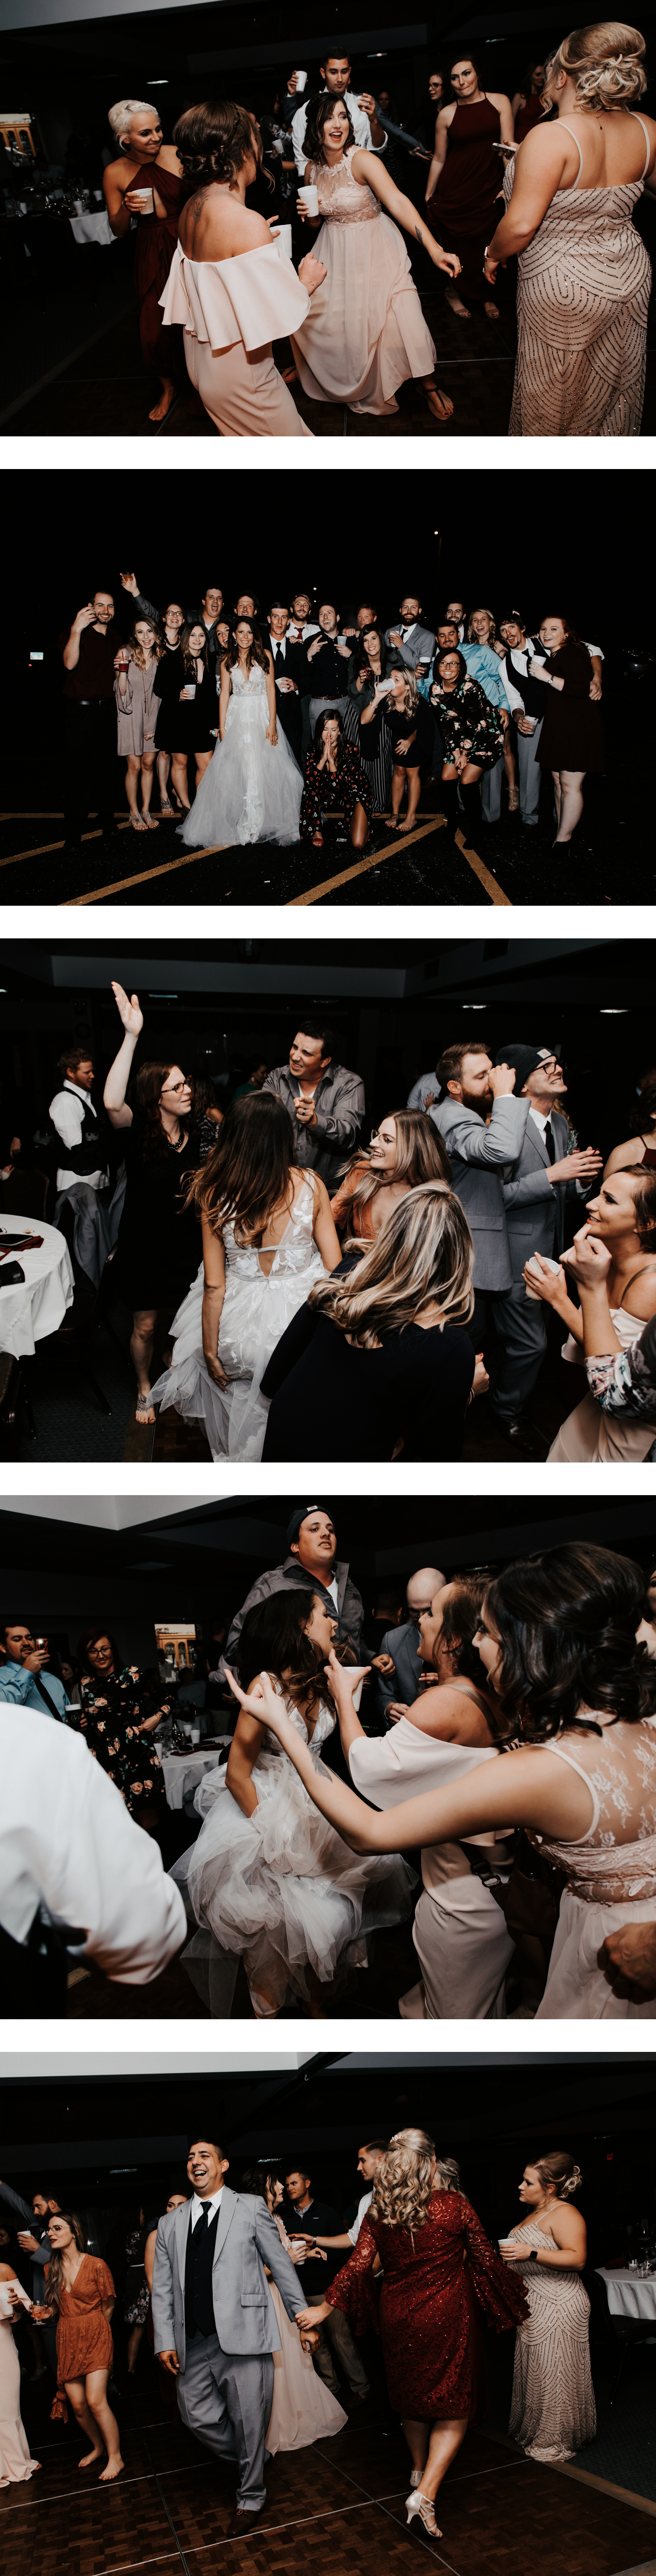 The Pollack Wedding 27.jpg